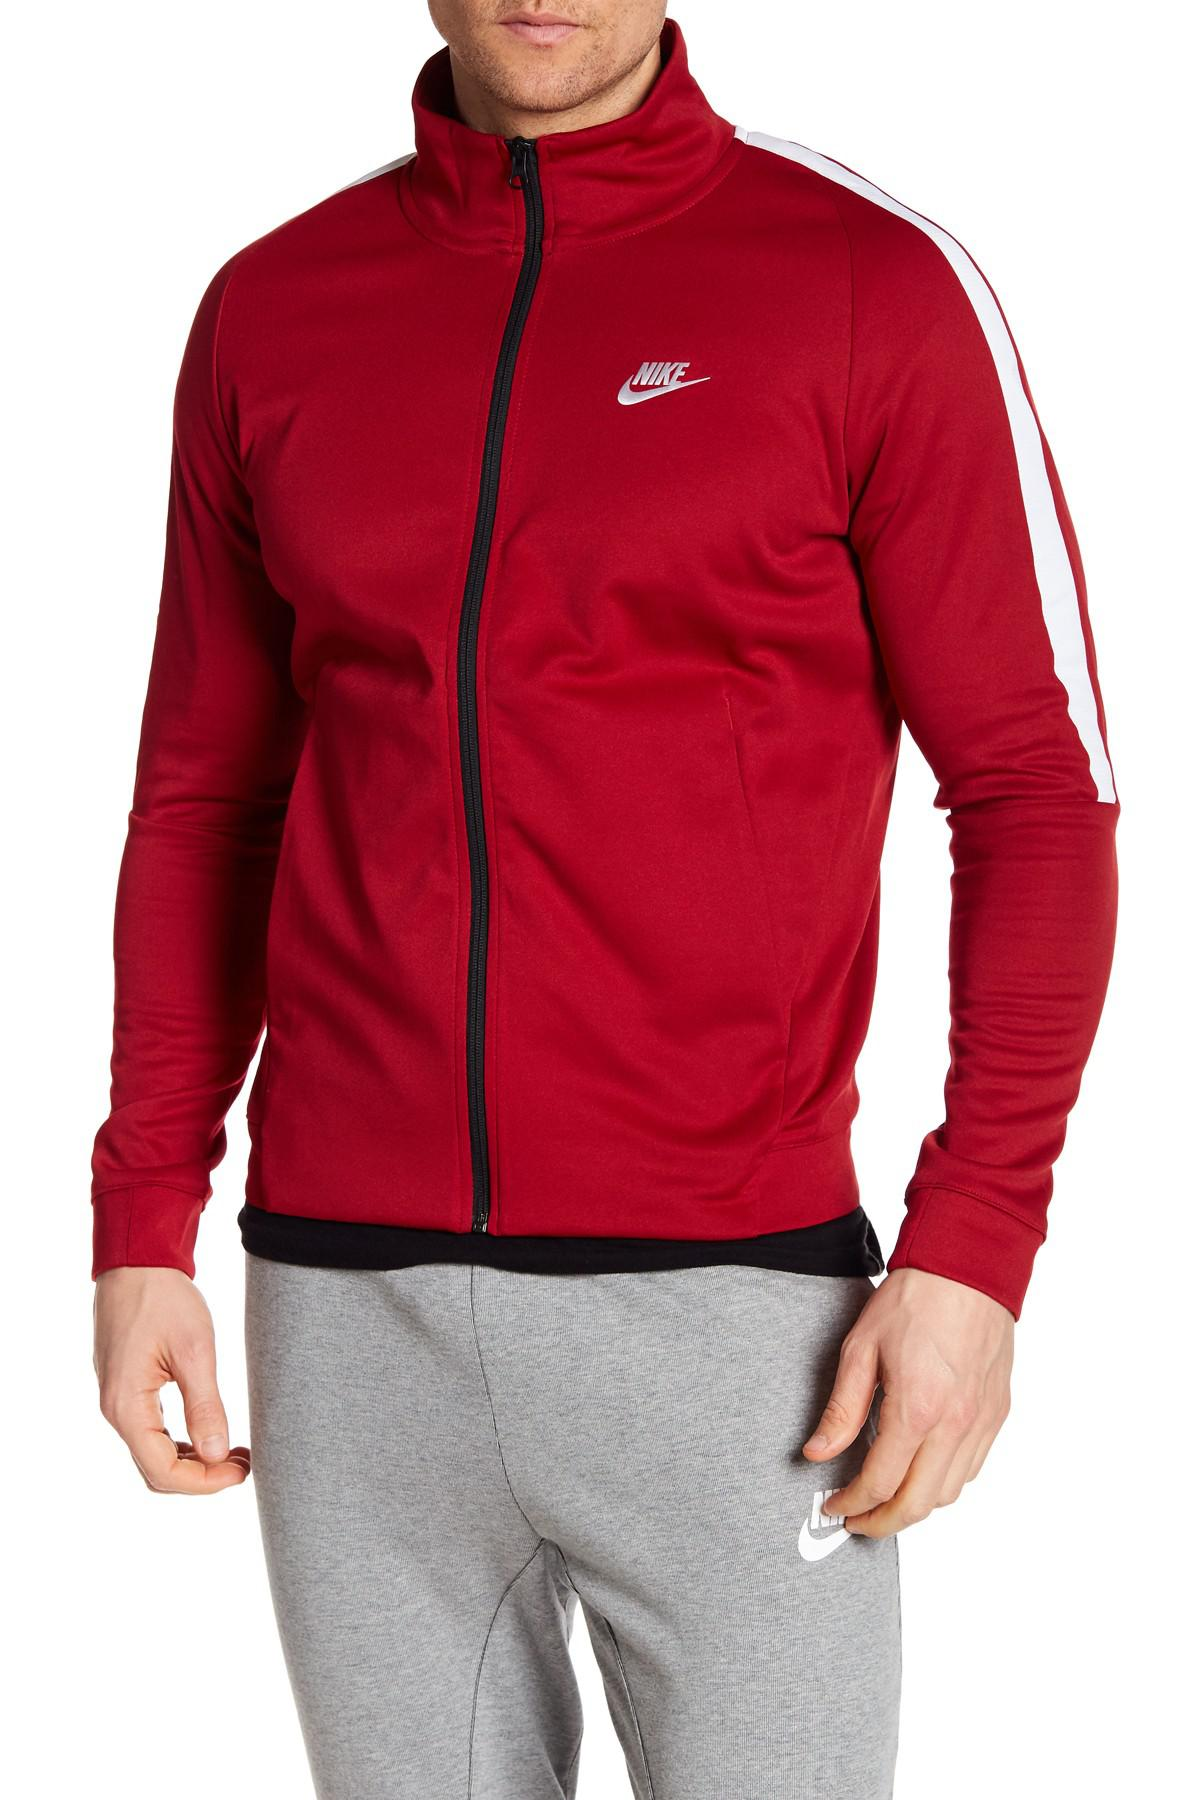 Lyst - Nike Tribute Poly Track Jacket in Red for Men e2b24c28c